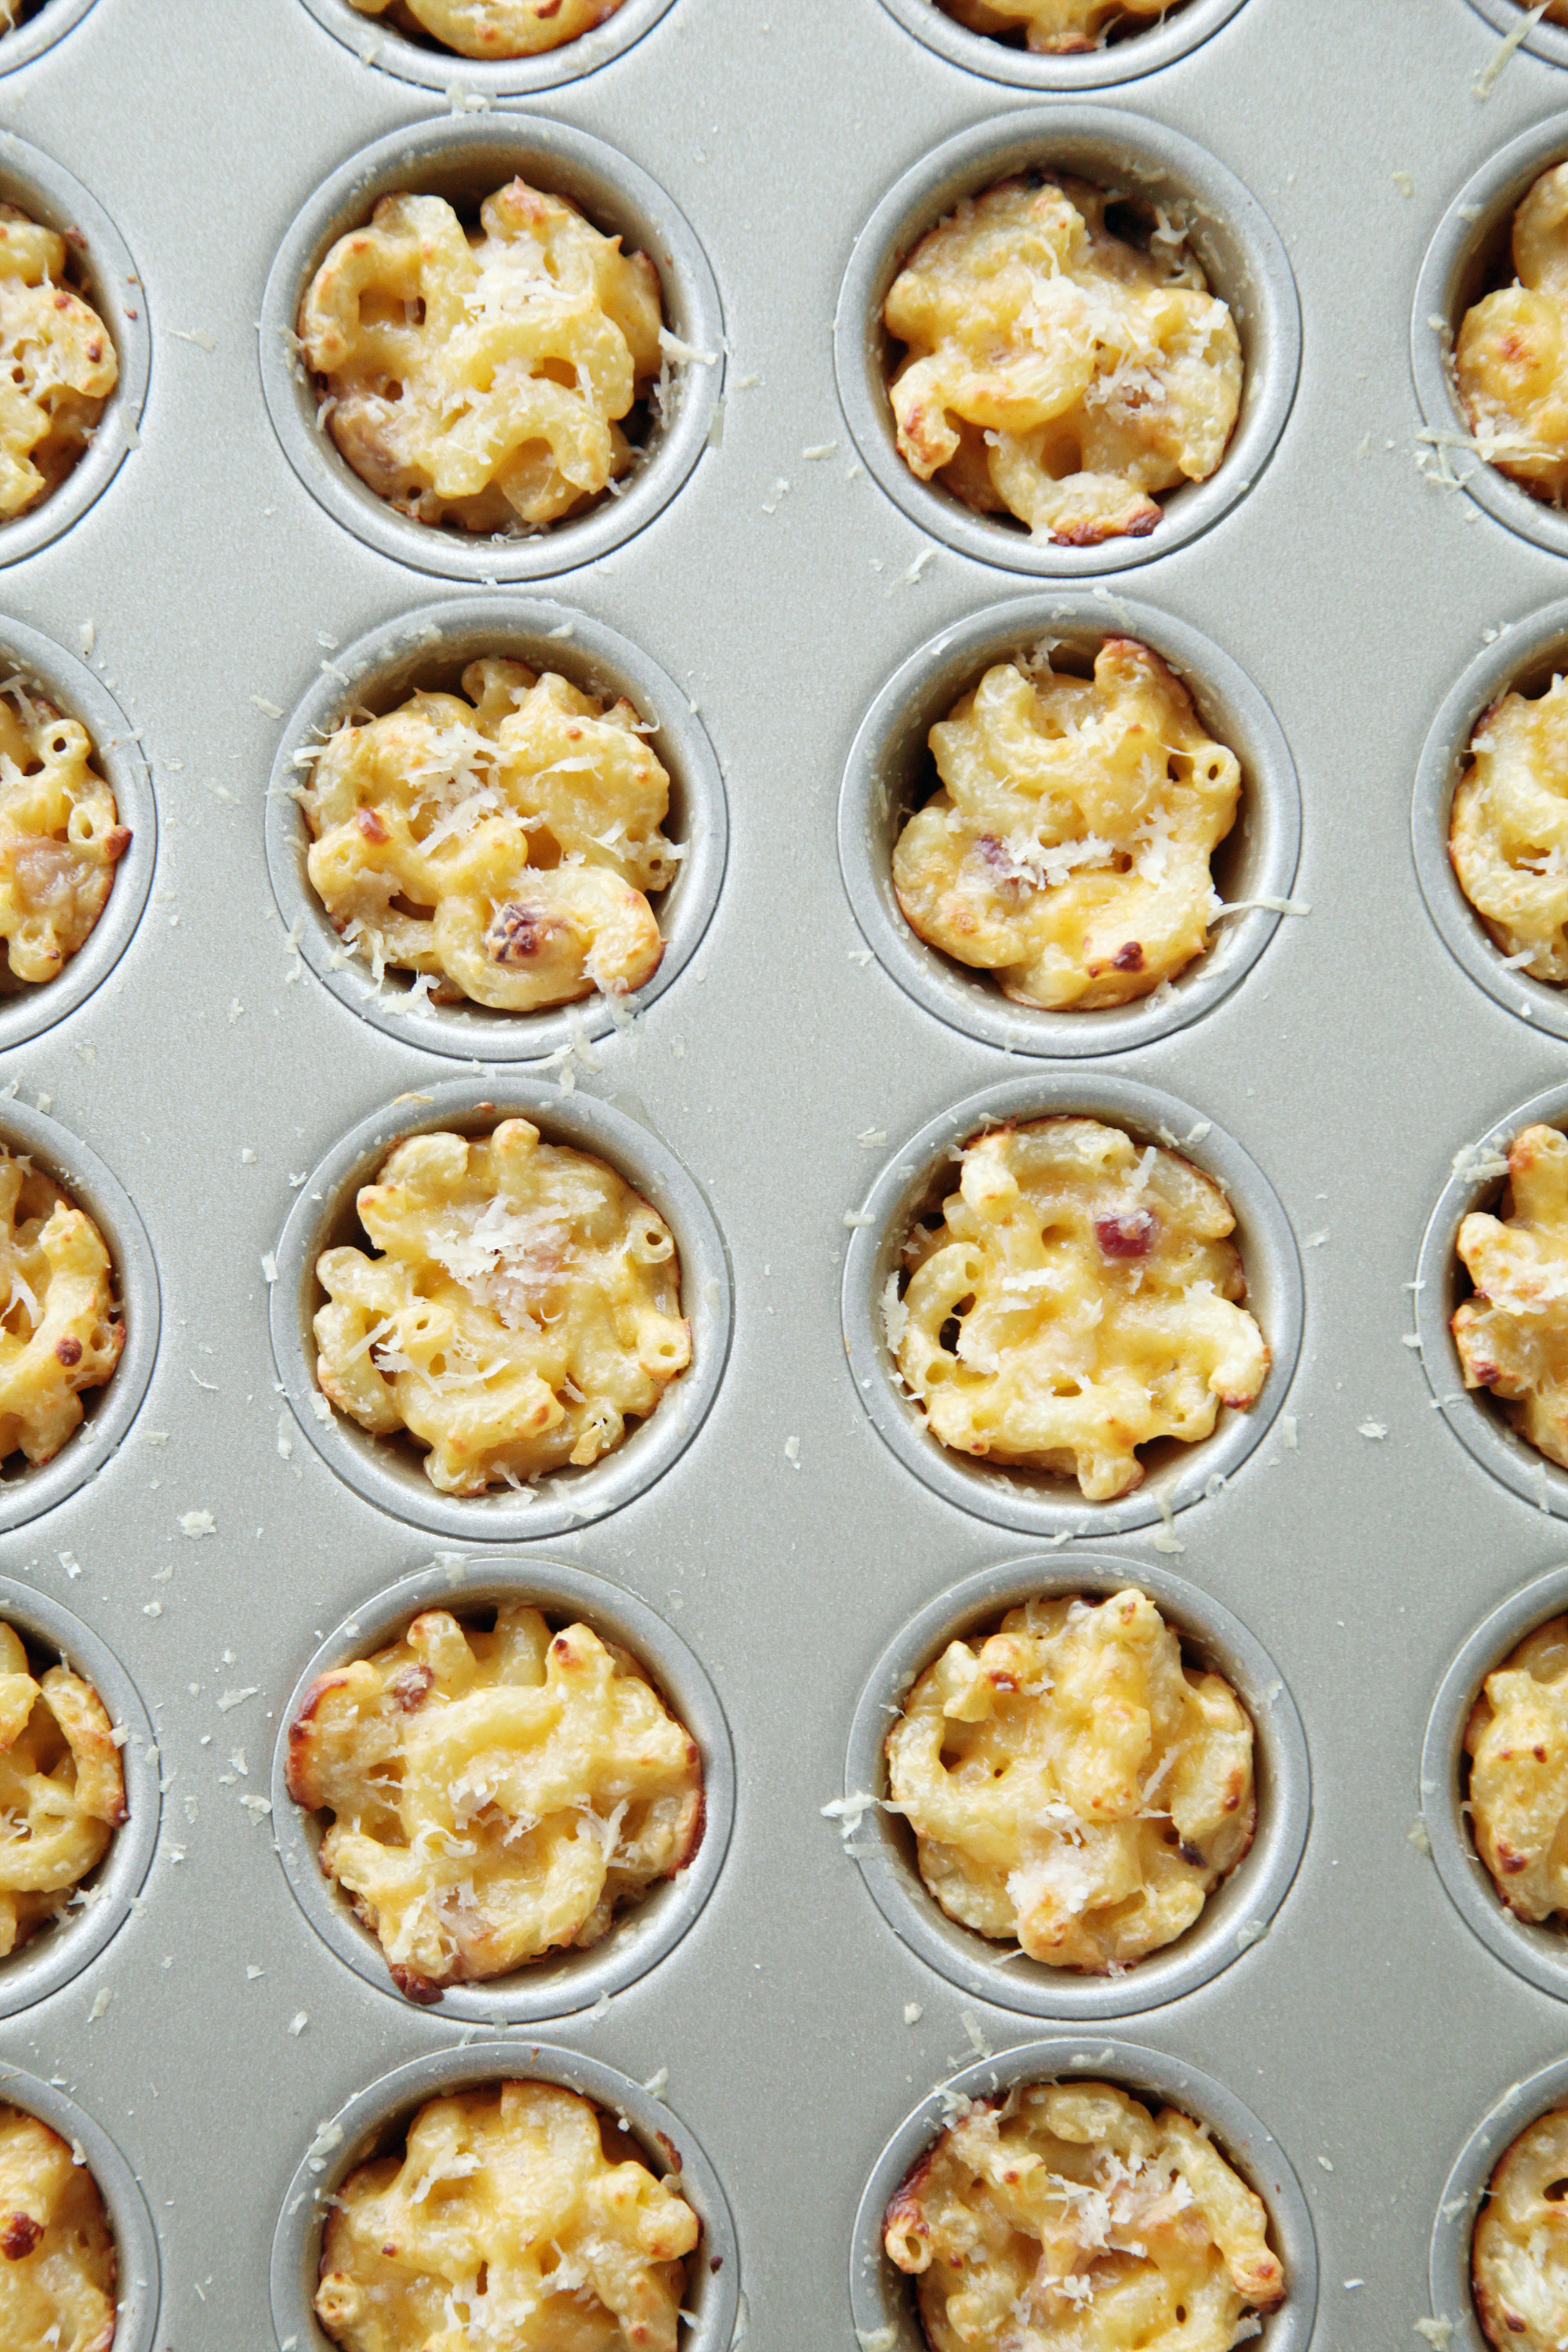 Mini macaroni and cheese appetizer recipe popsugar food mini macaroni and cheese appetizer recipe forumfinder Images